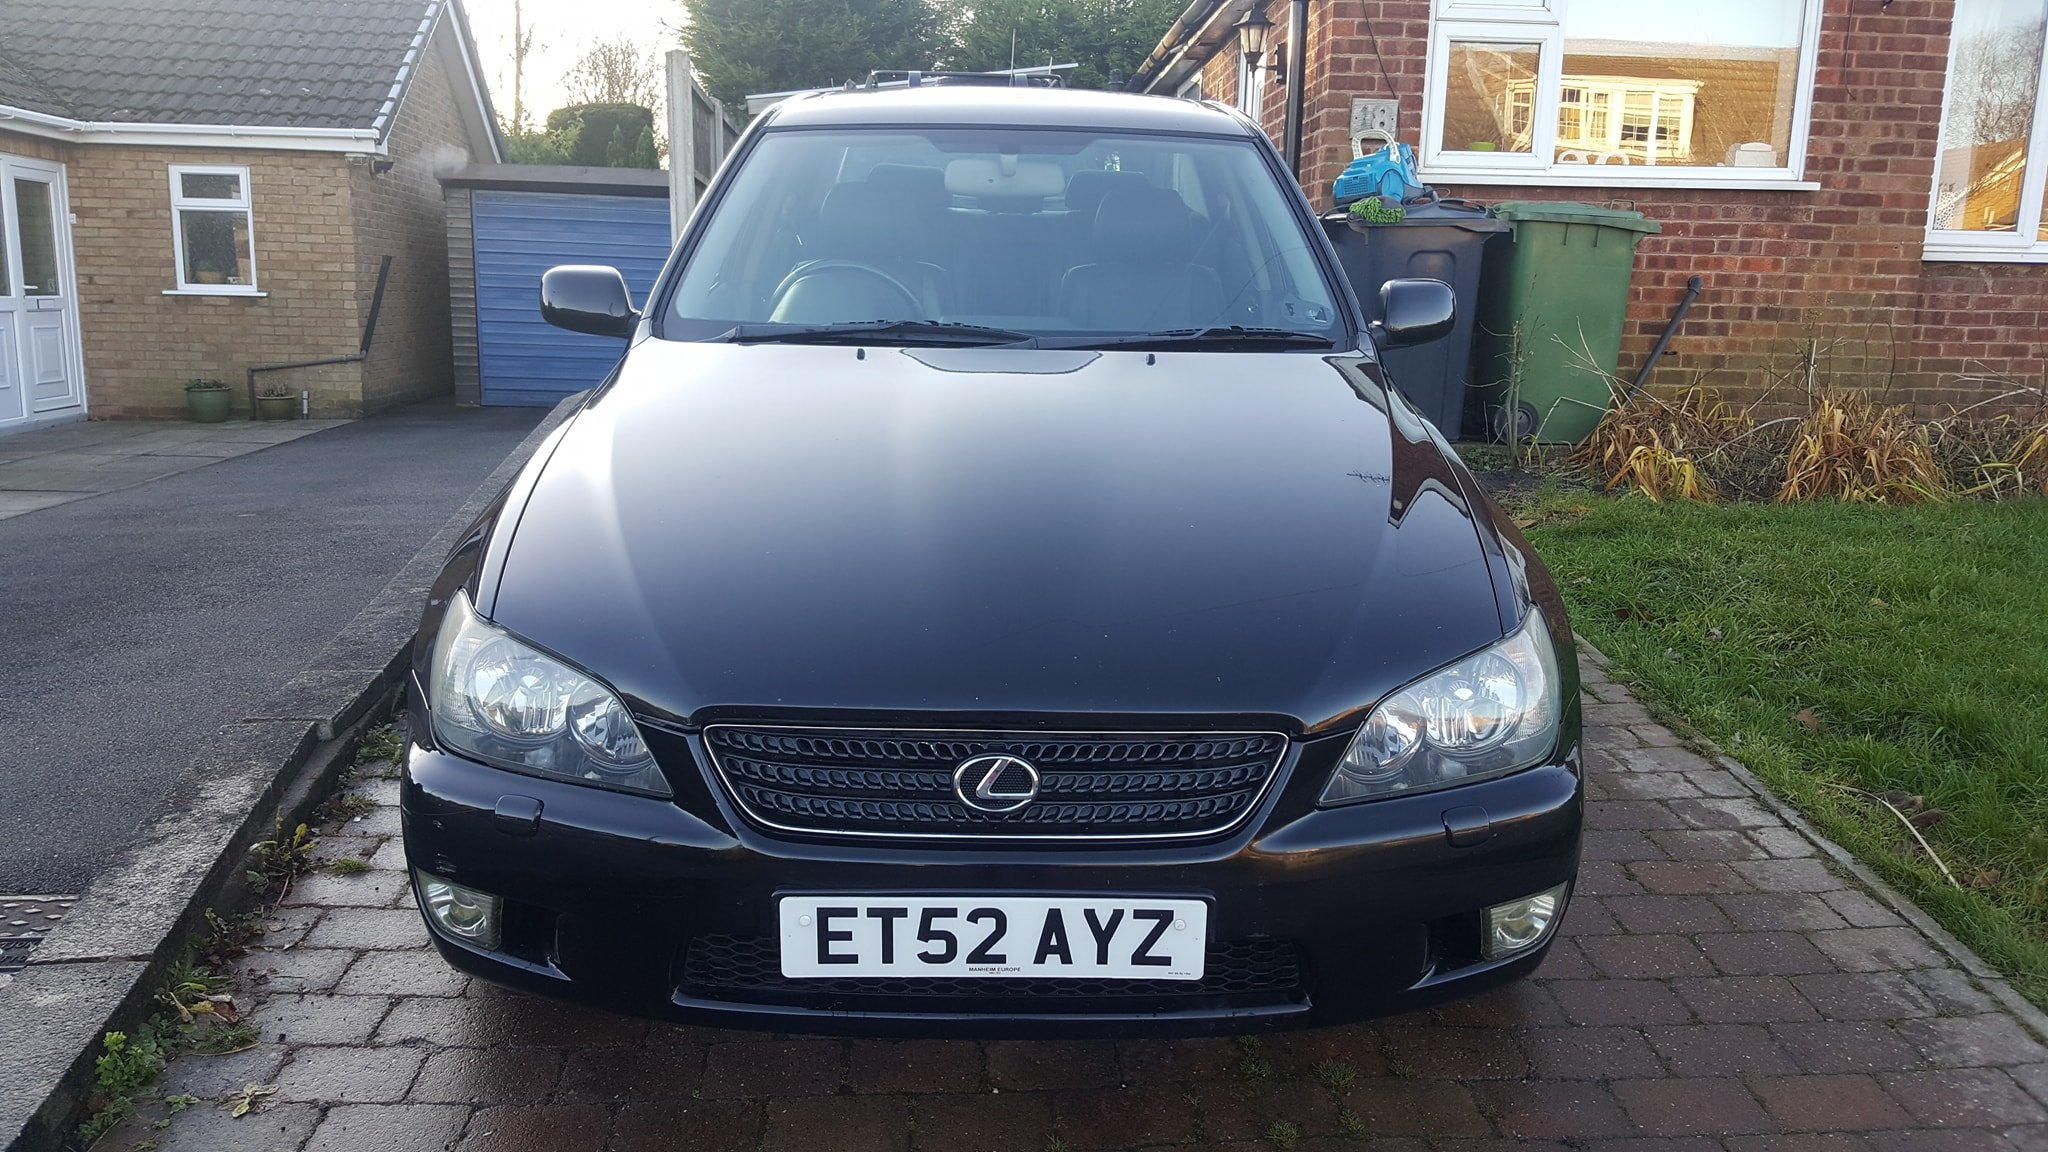 2002 lexus is300 100k miles in black 12 months MOT For Sale (picture 6 of 6)